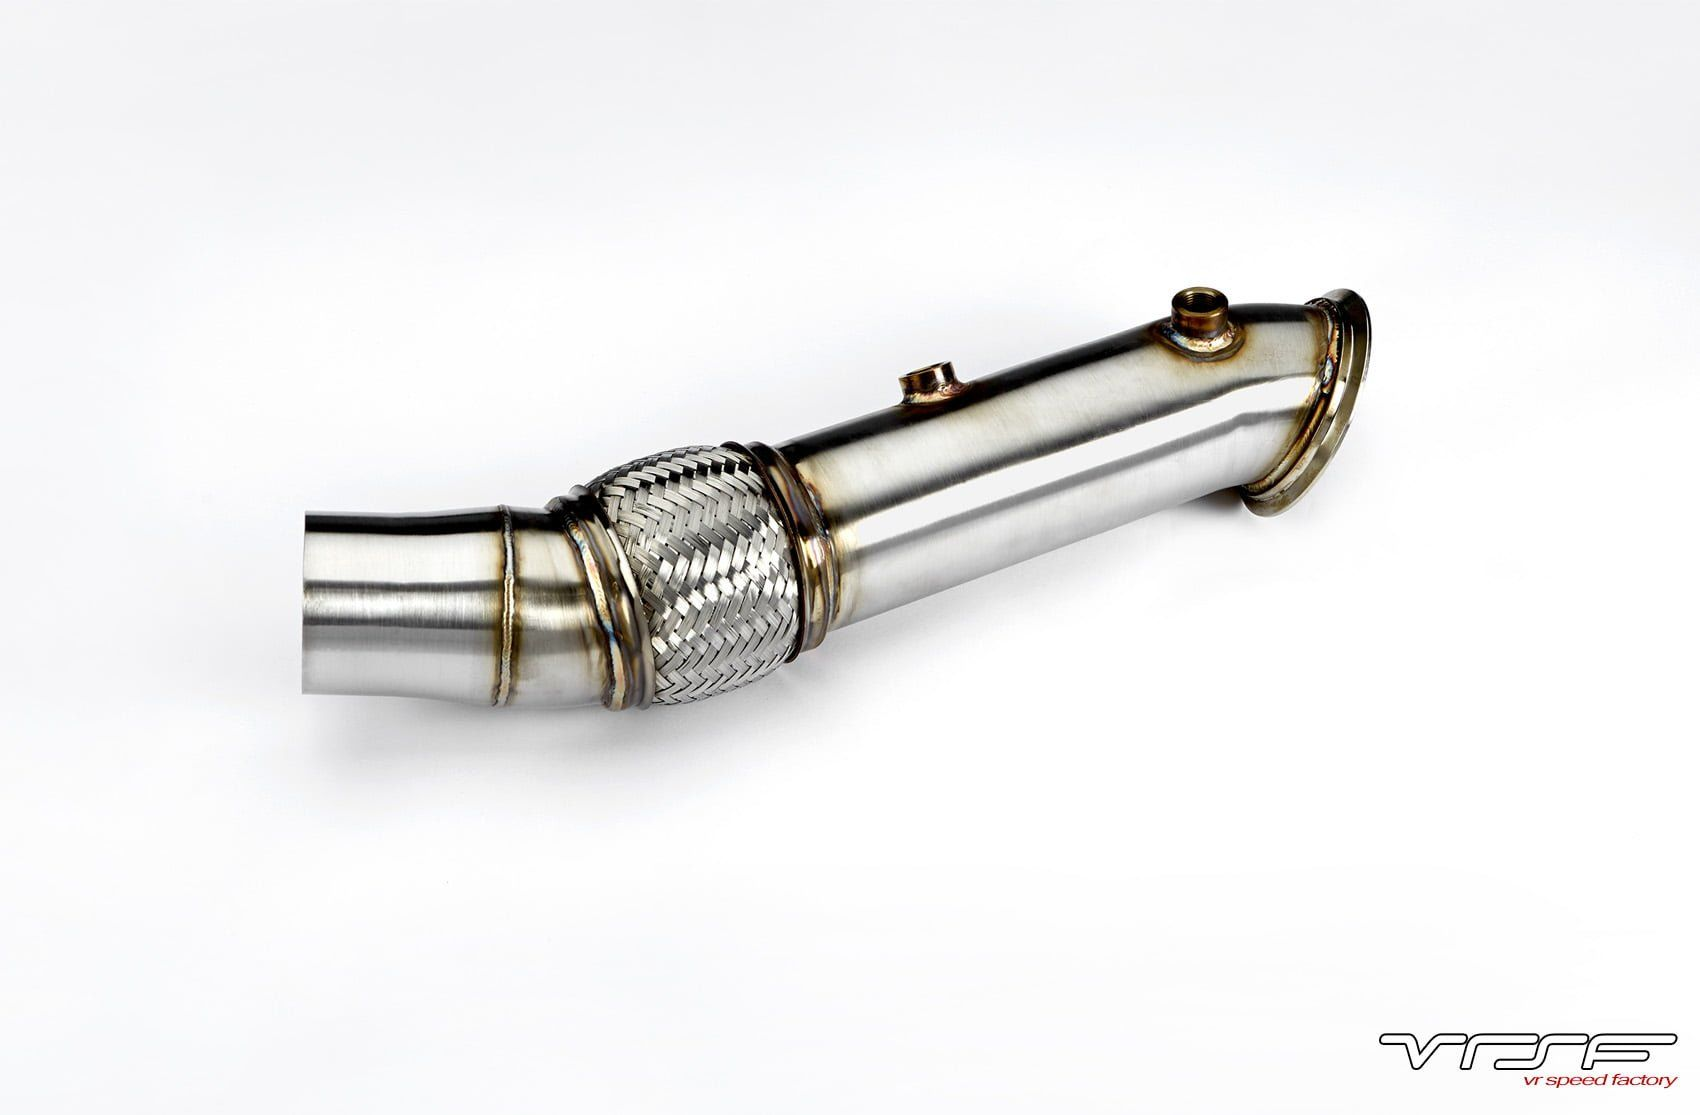 VRSF Stainless Steel Catless Downpipe Upgrade for F10/F11/F07 535i/xi  F12/F13 640i E70/E71 X5 X6 - VR Speed Factory